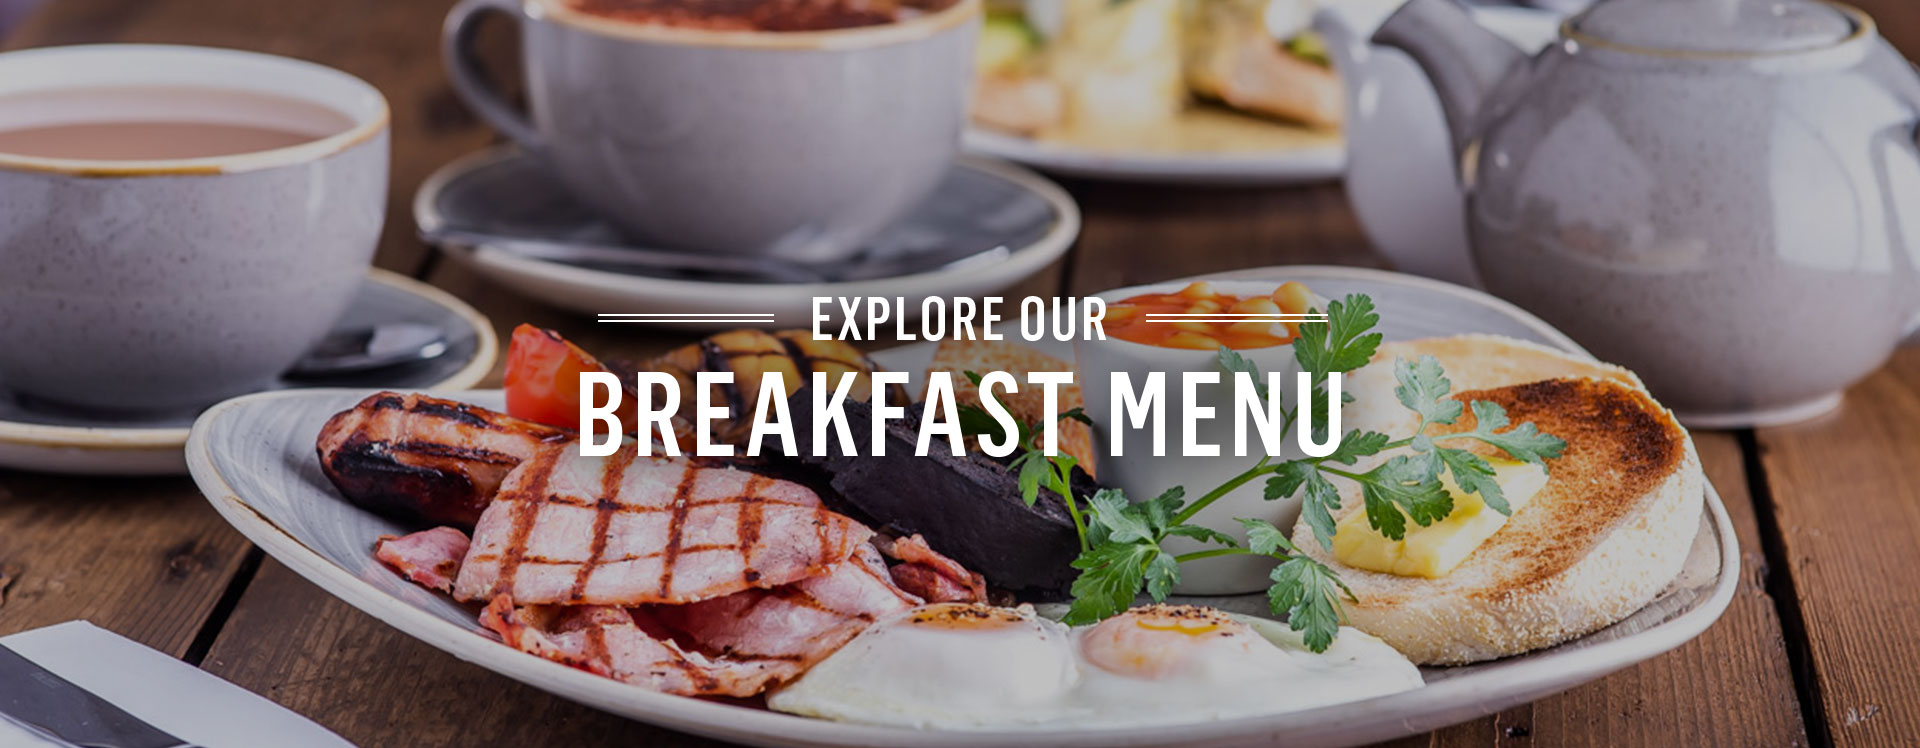 Breakfast at The Curler's Rest - Book a table